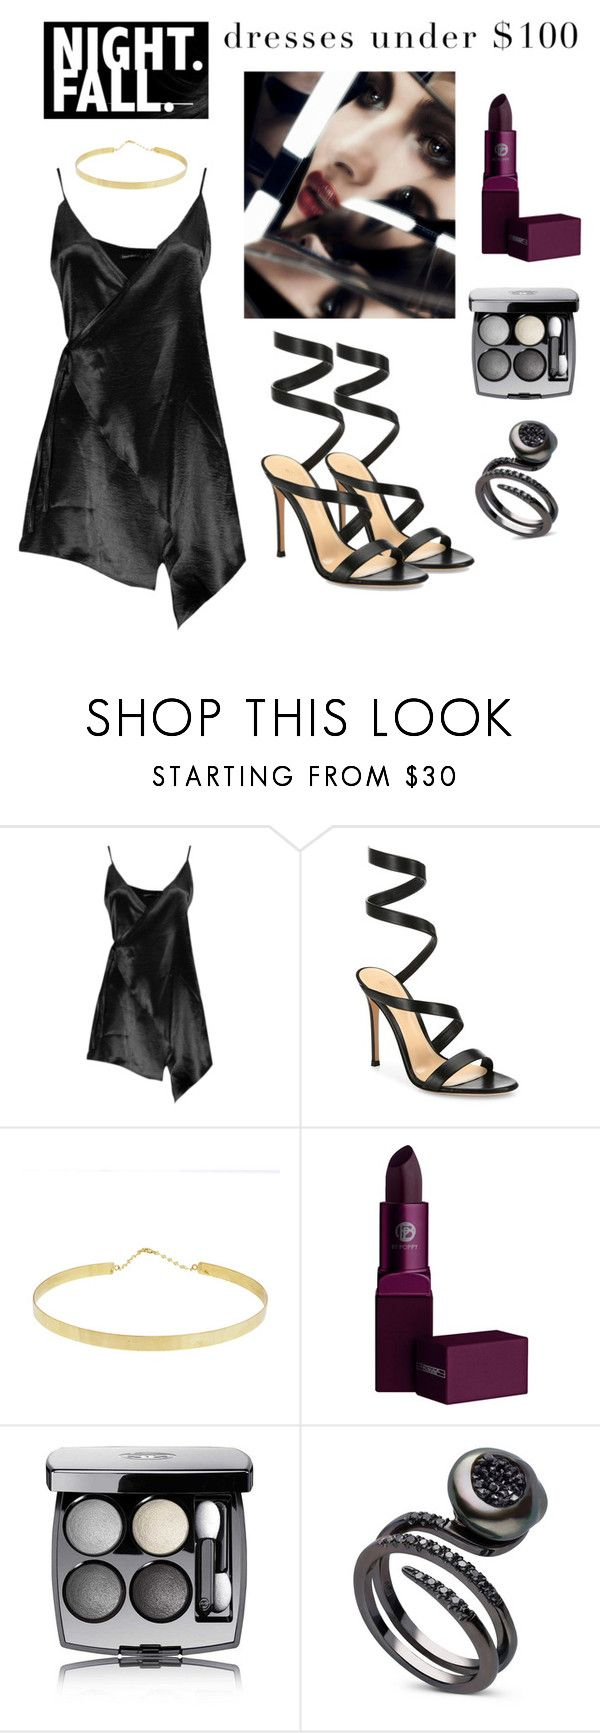 """""""Nocturnal"""" by boredbanana ❤ liked on Polyvore featuring Boohoo, Gianvito Rossi, Lana, Lipstick Queen and Chanel"""